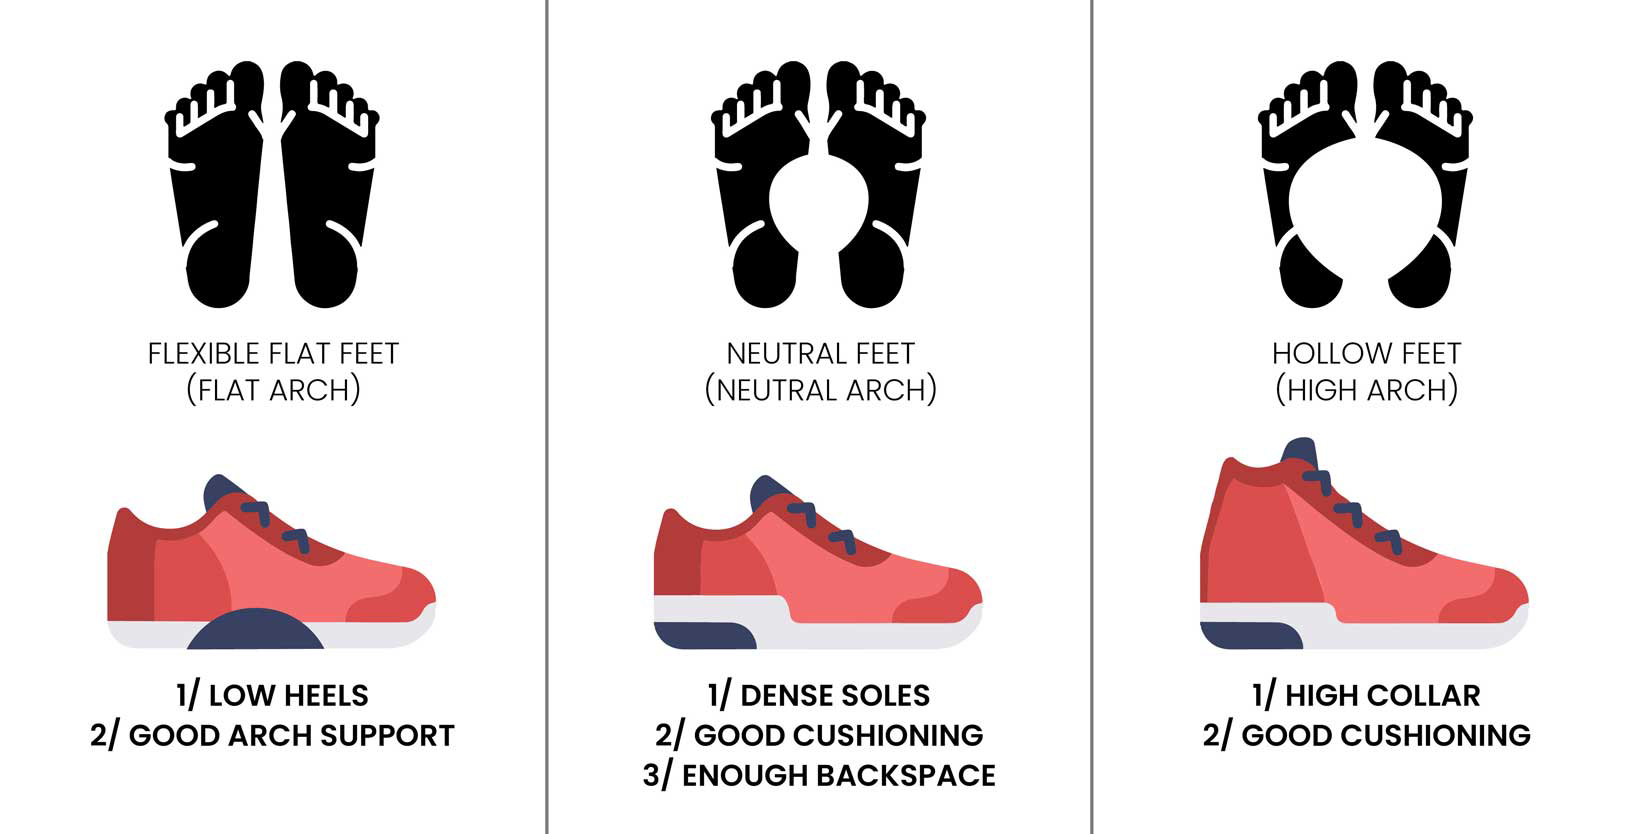 Right shoes for each foot shape